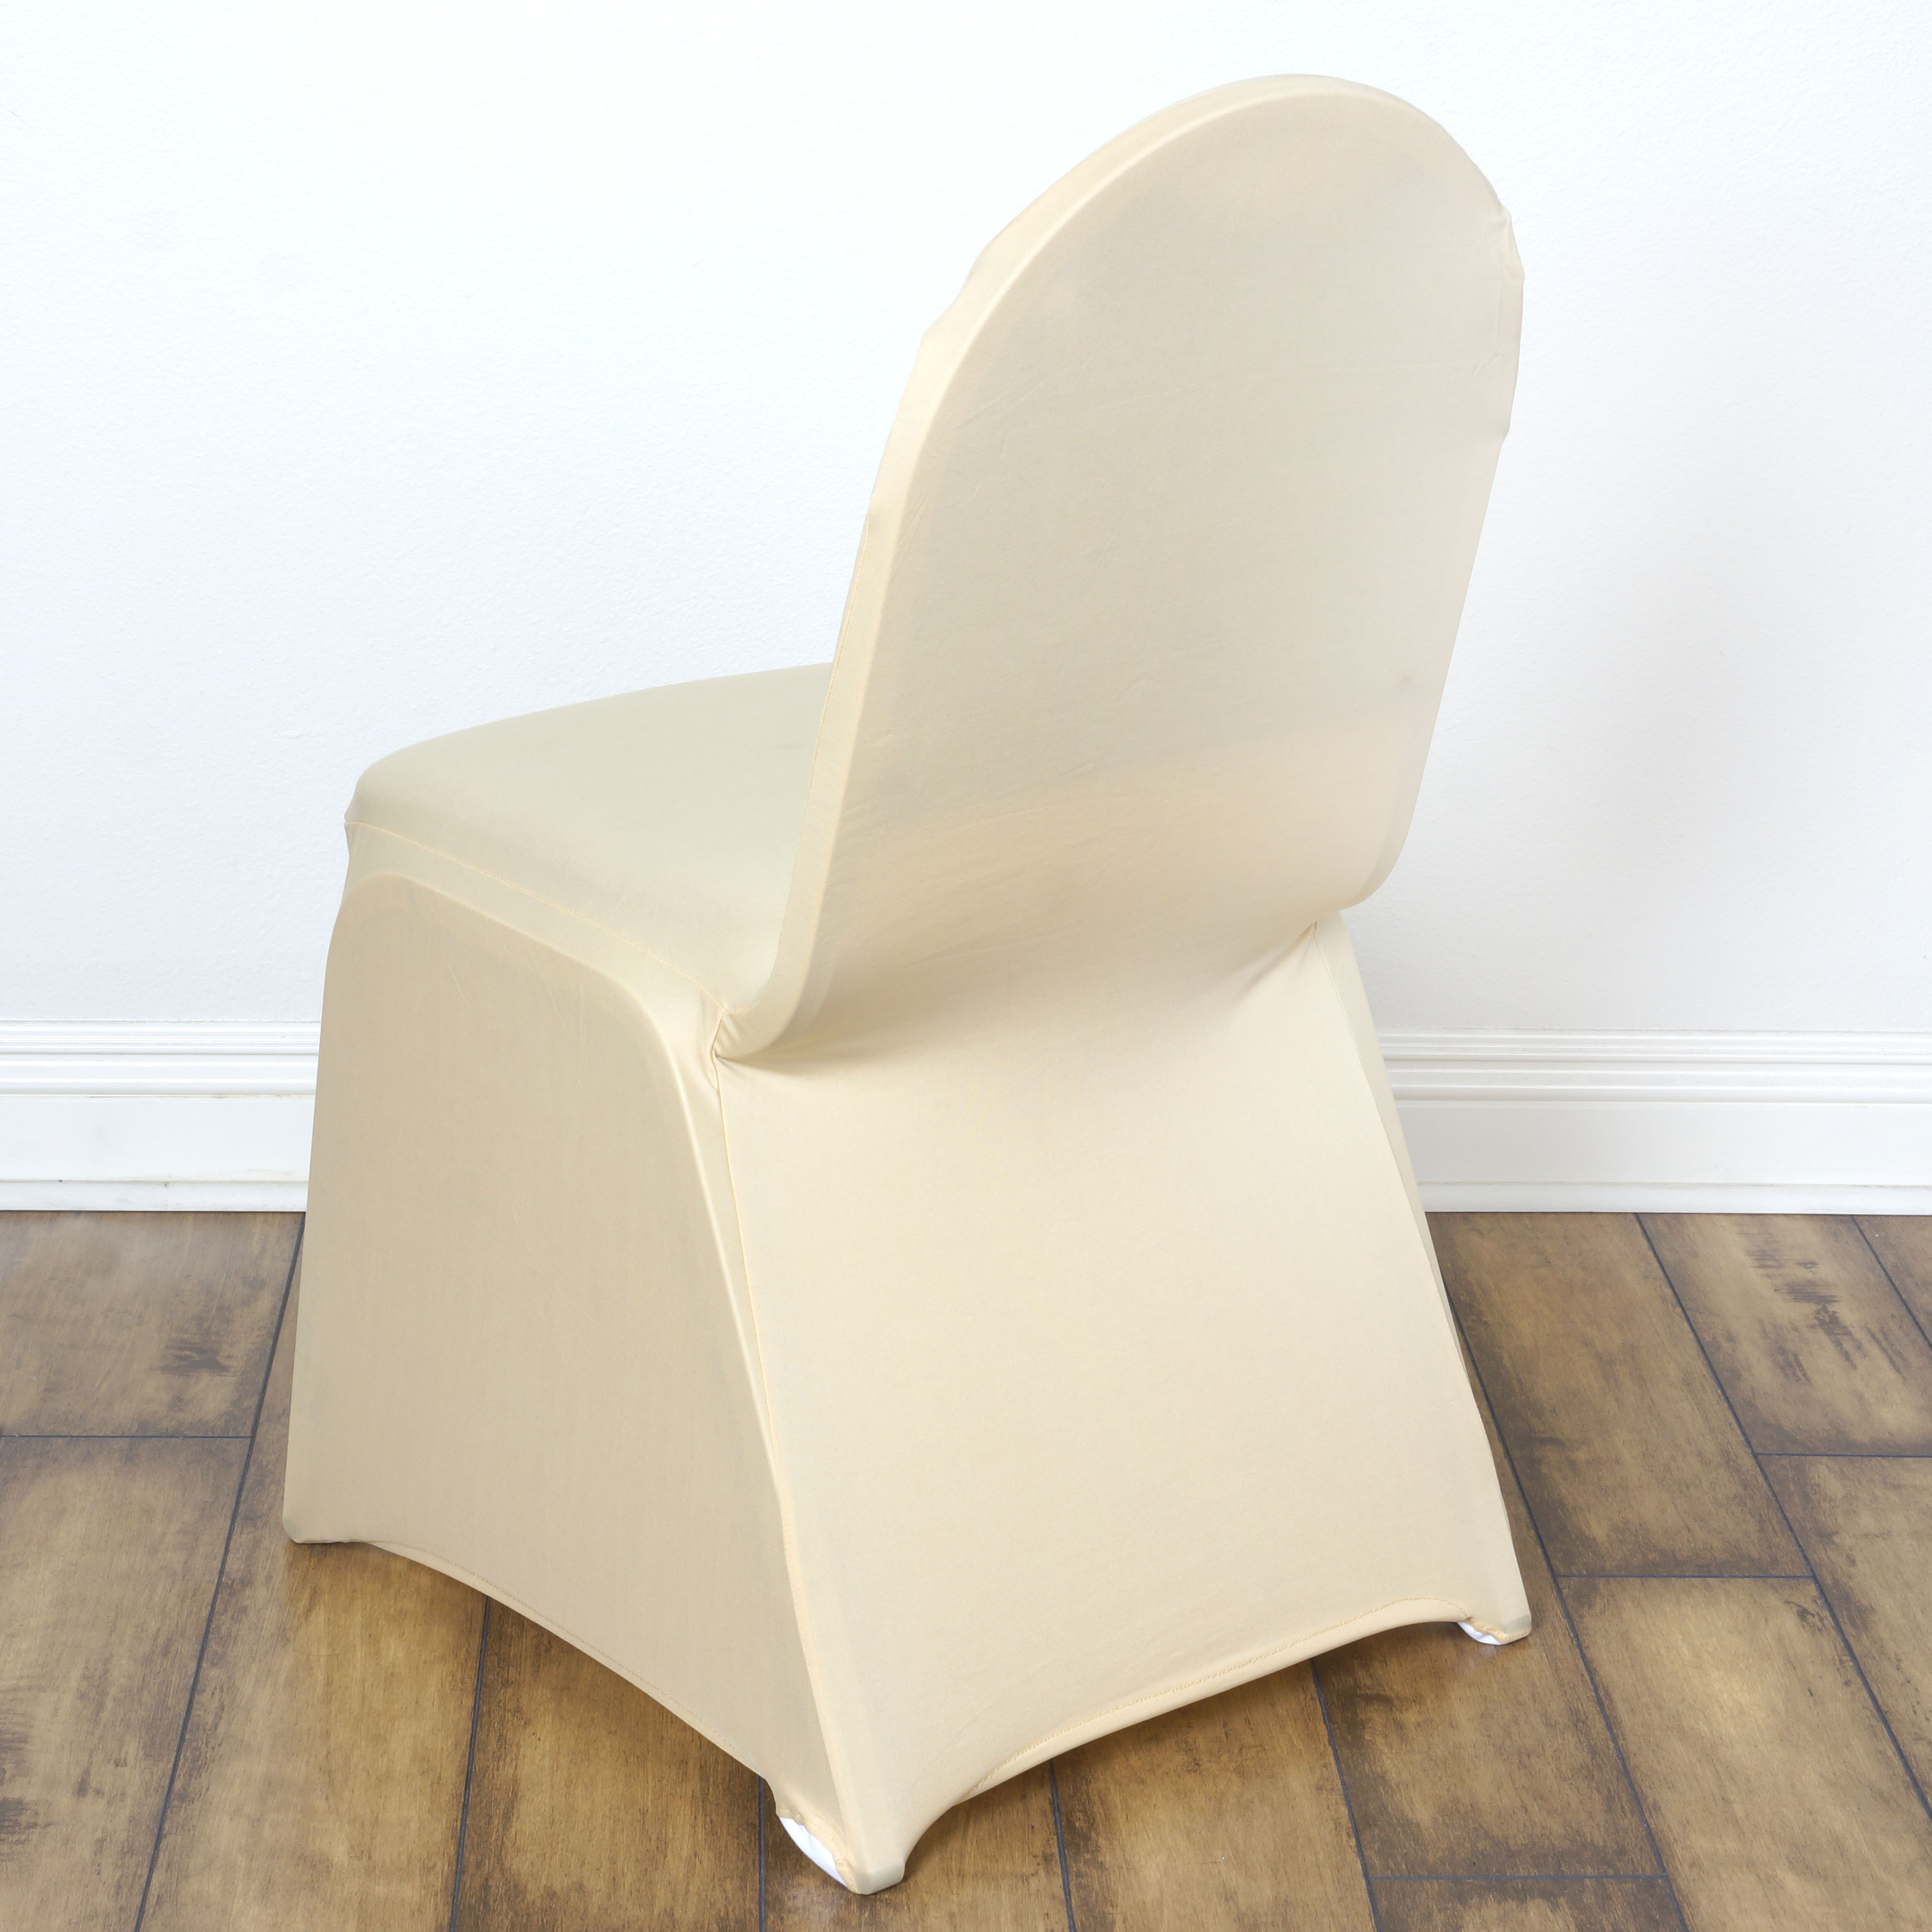 Spandex STRETCHABLE CHAIR COVERS Wedding Reception Party Decorations Supply S